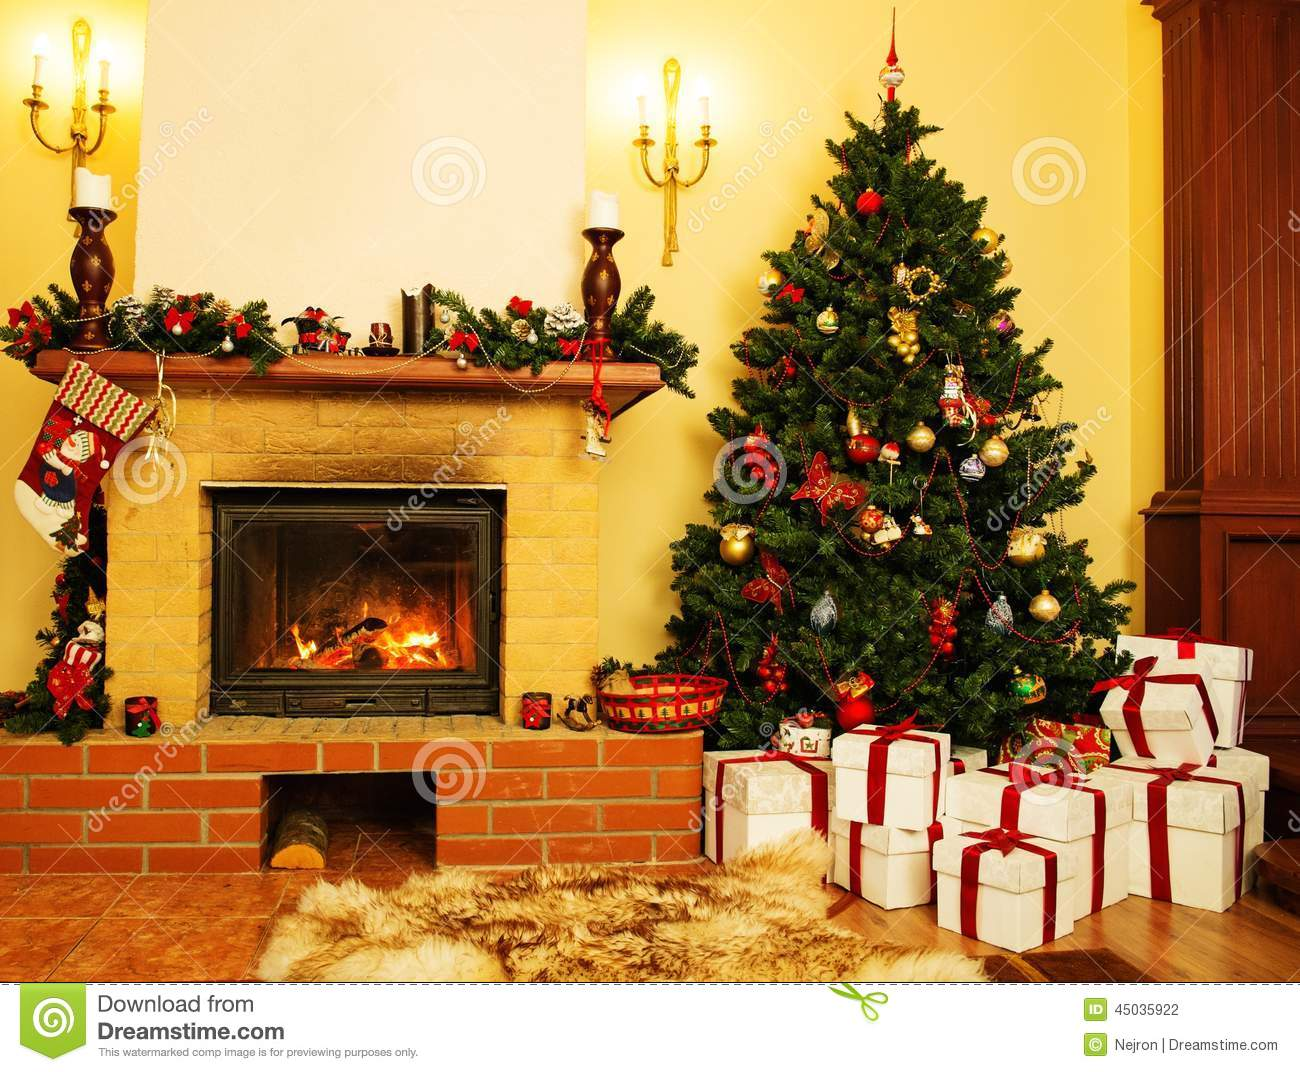 No l a d cor l 39 int rieur de maison photo stock image 45035922 - Maison decoree pour noel ...